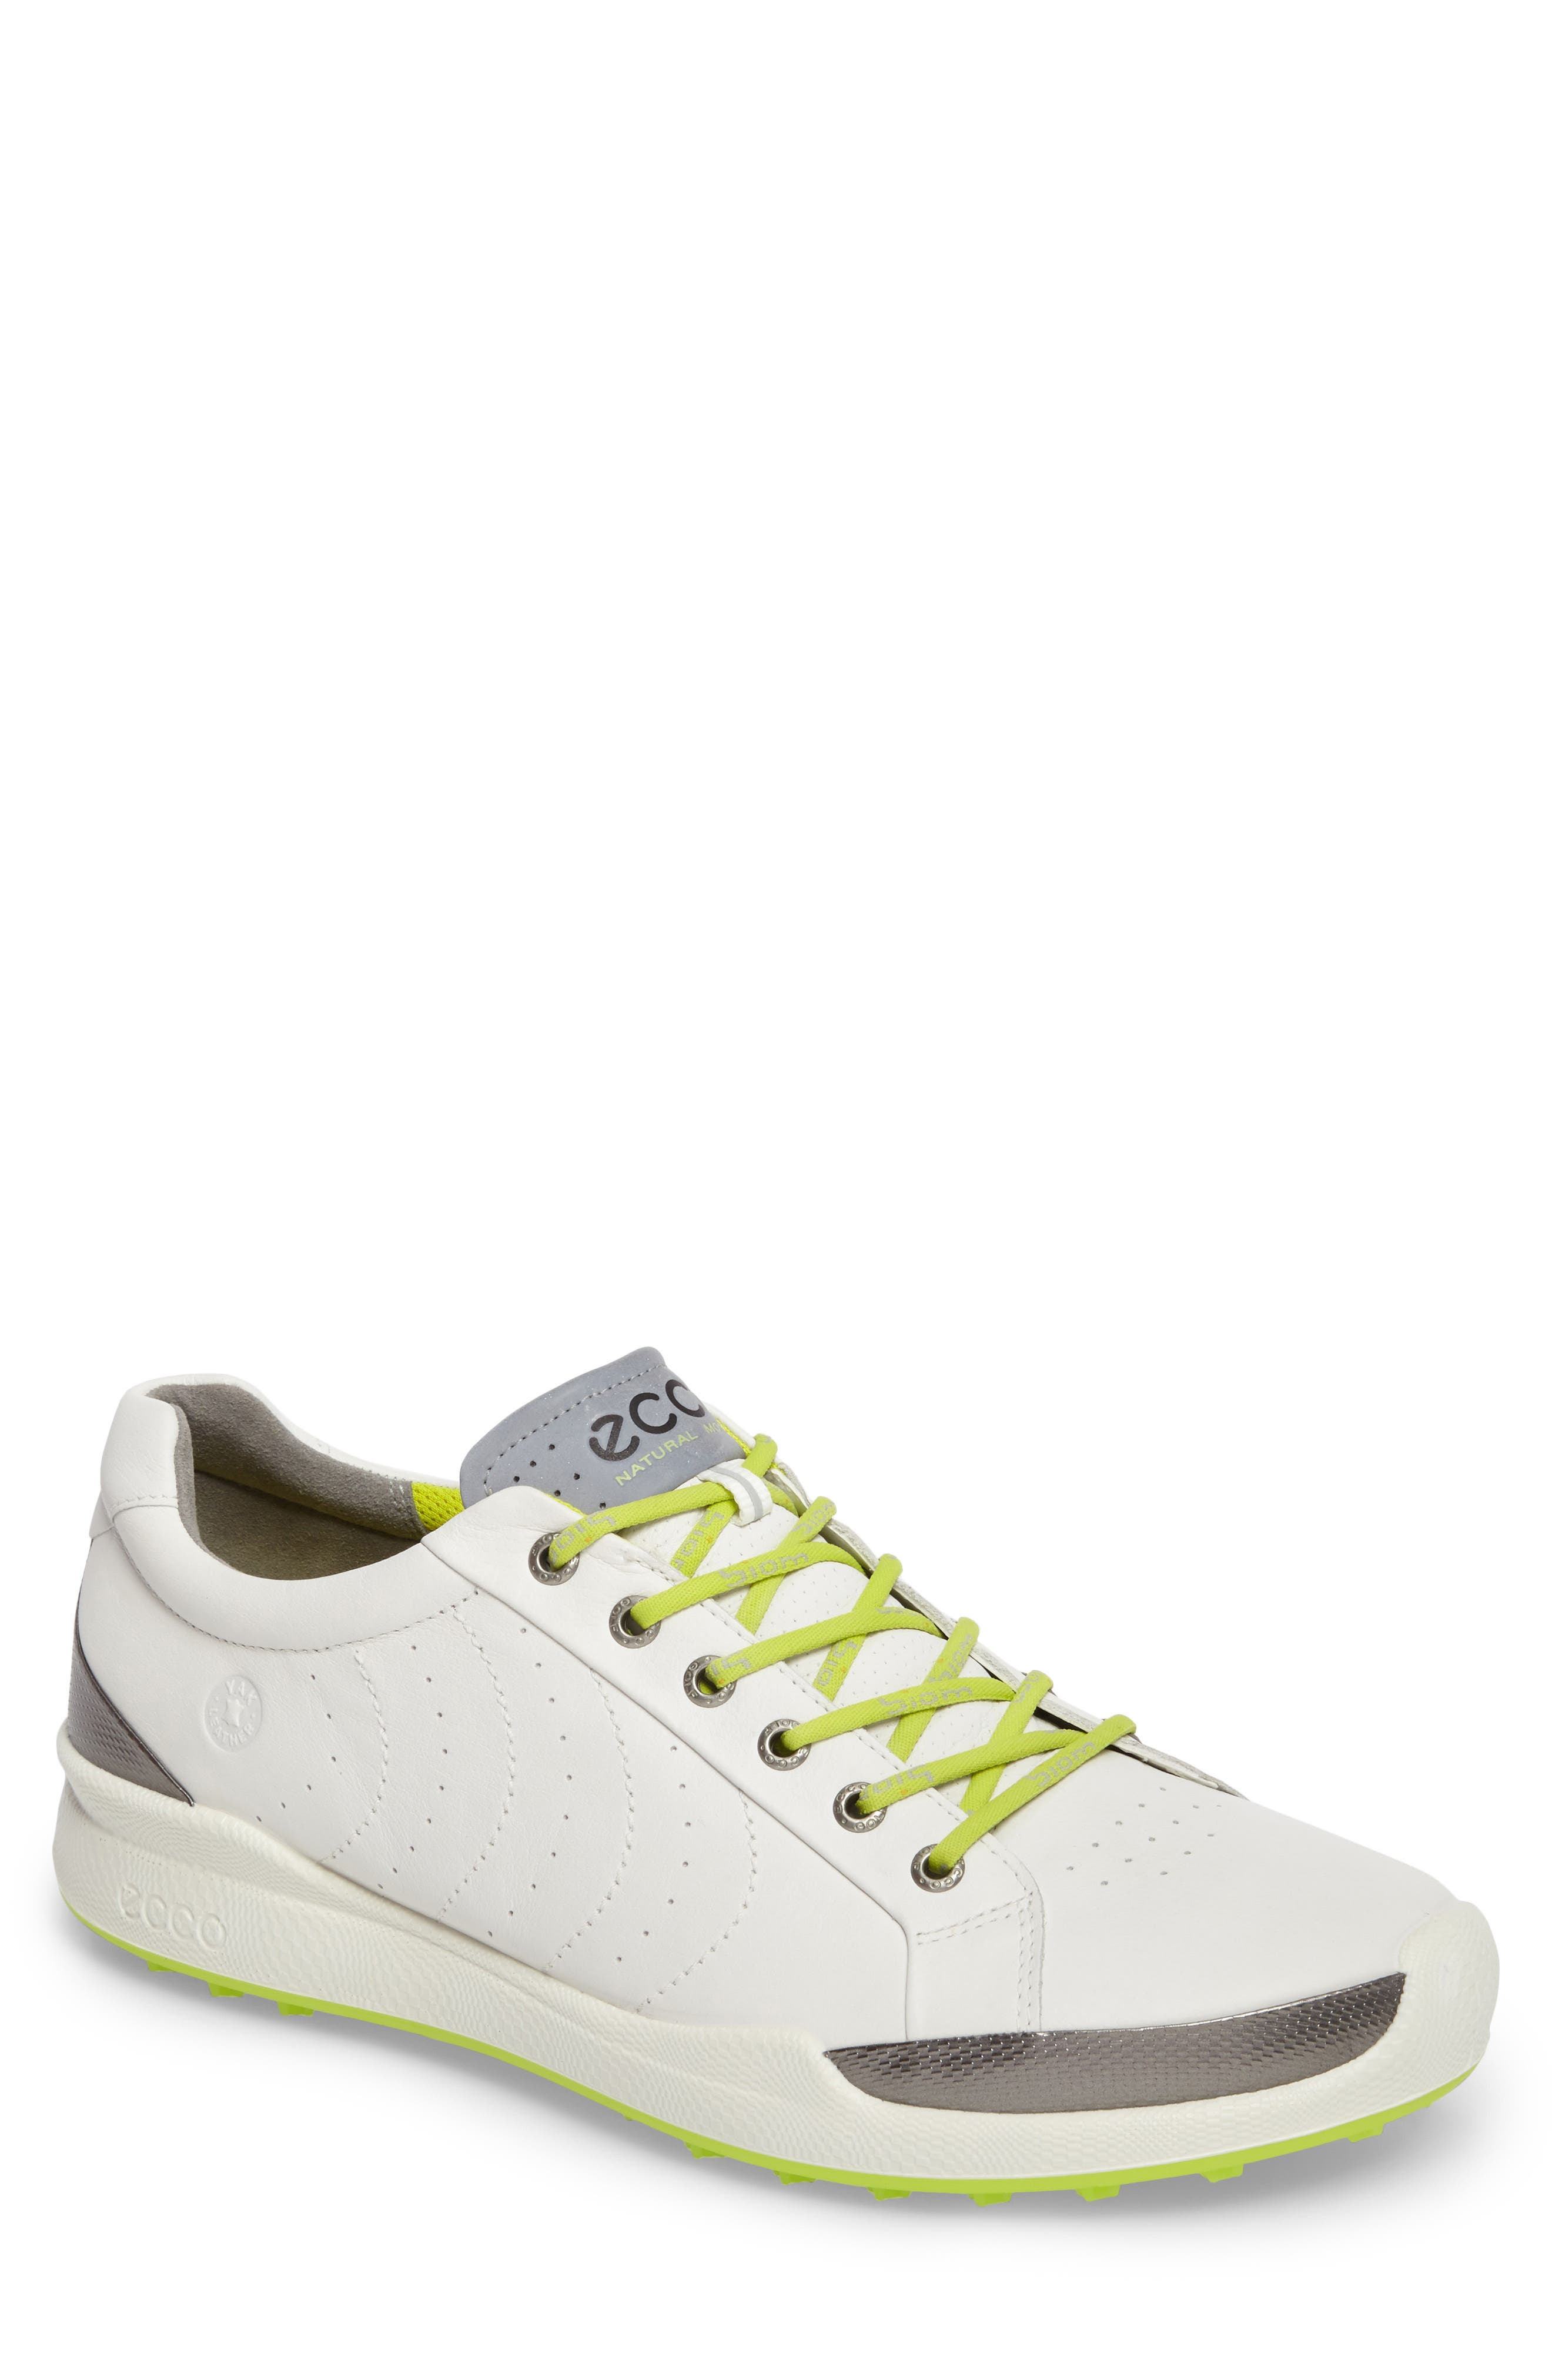 Main Image - ECCO 'Biom Hybrid' Golf Shoe   (Men)